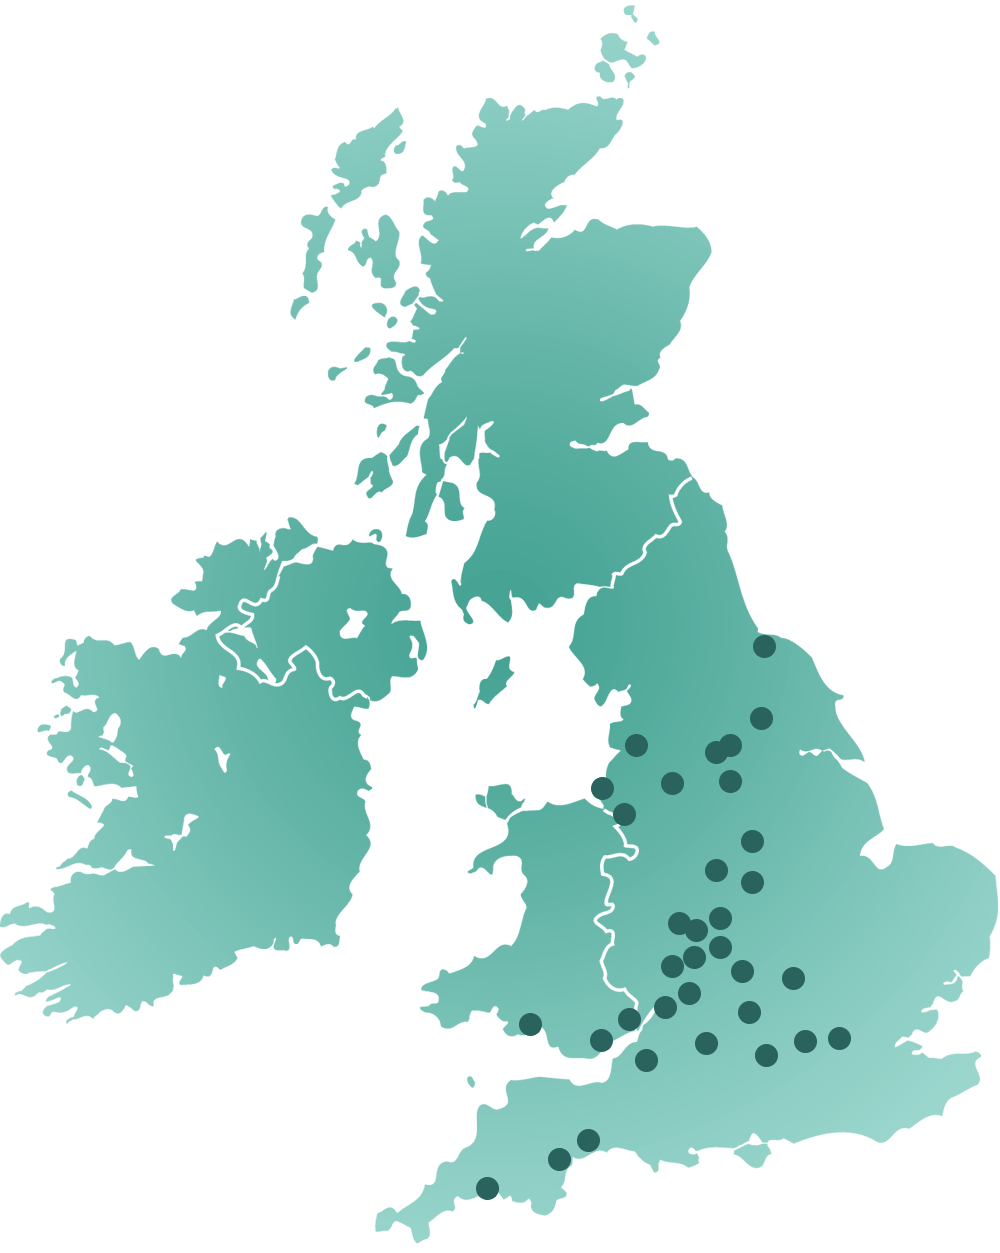 Map of the UK showing towns and city locations for Invisi Hair Replacement Systems Ltd.